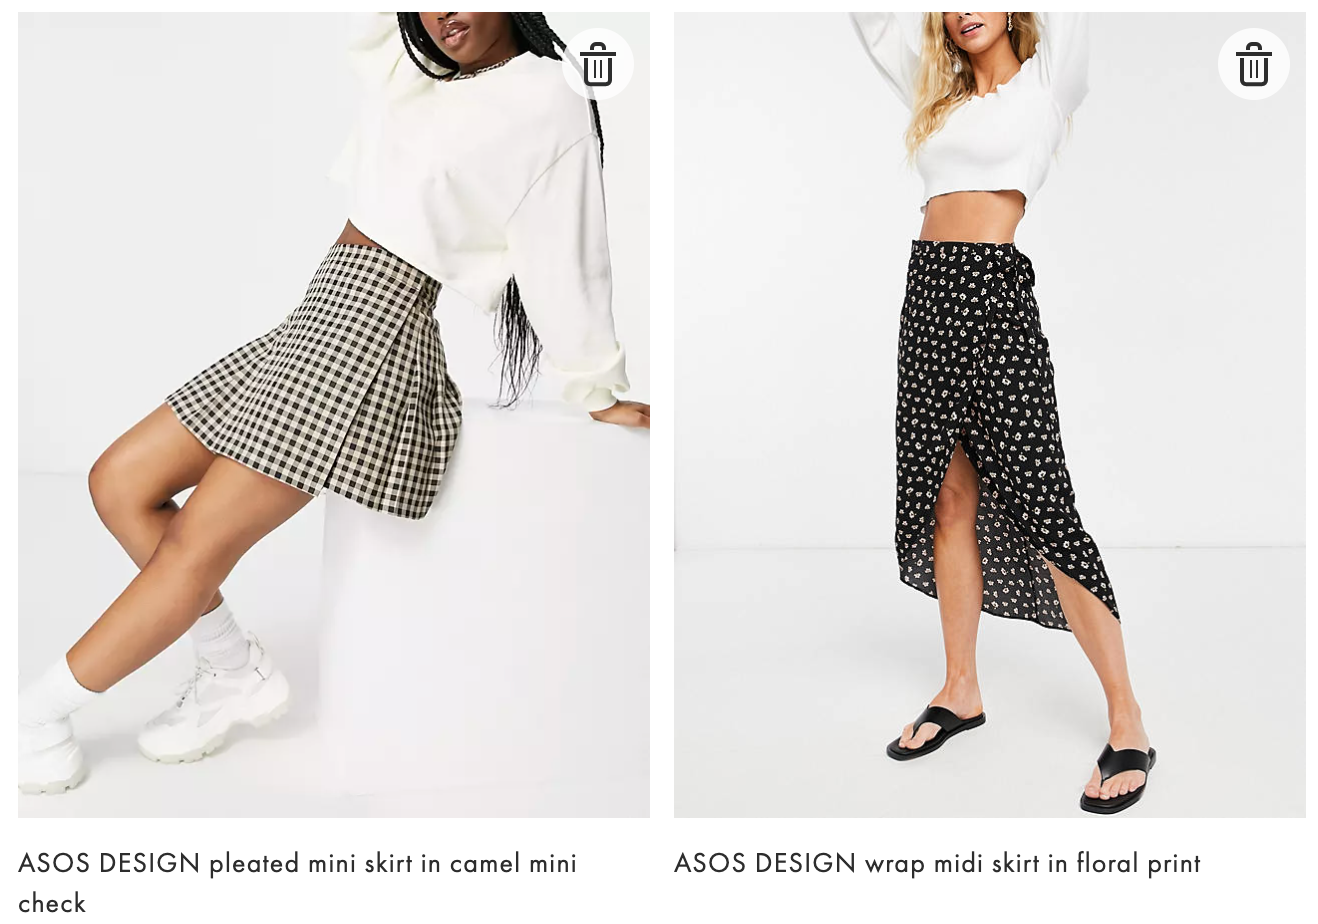 ASOS DESIGN pleated mini skirt in camel mini check ASOS DESIGN wrap midi skirt in floral print